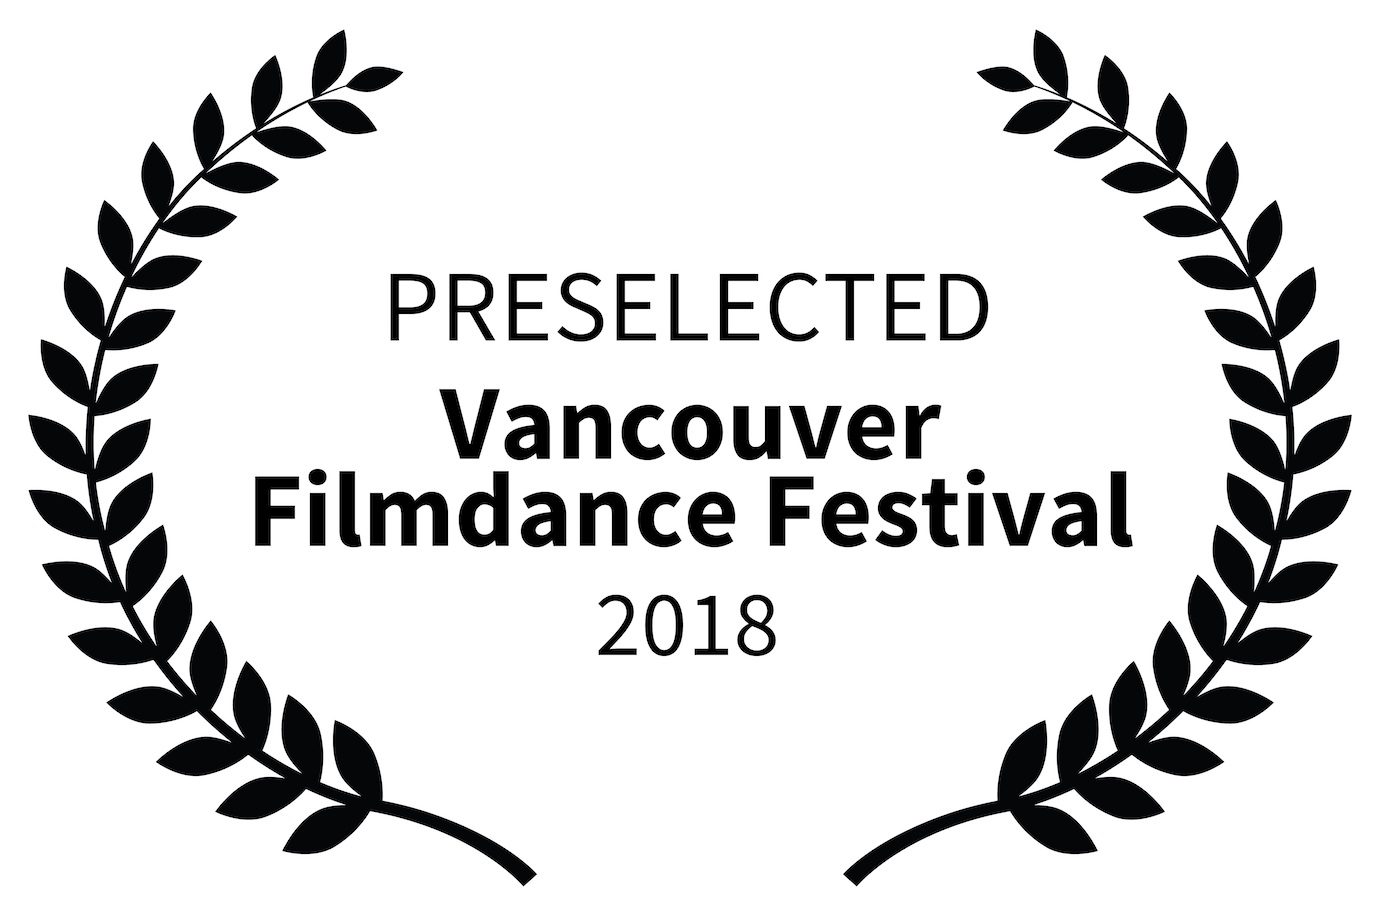 Sofia Wellman - Whats Love Got To Do With It - Film by Sofia Wellman - Vancouver Filmdance Festival - Preselected - 2018